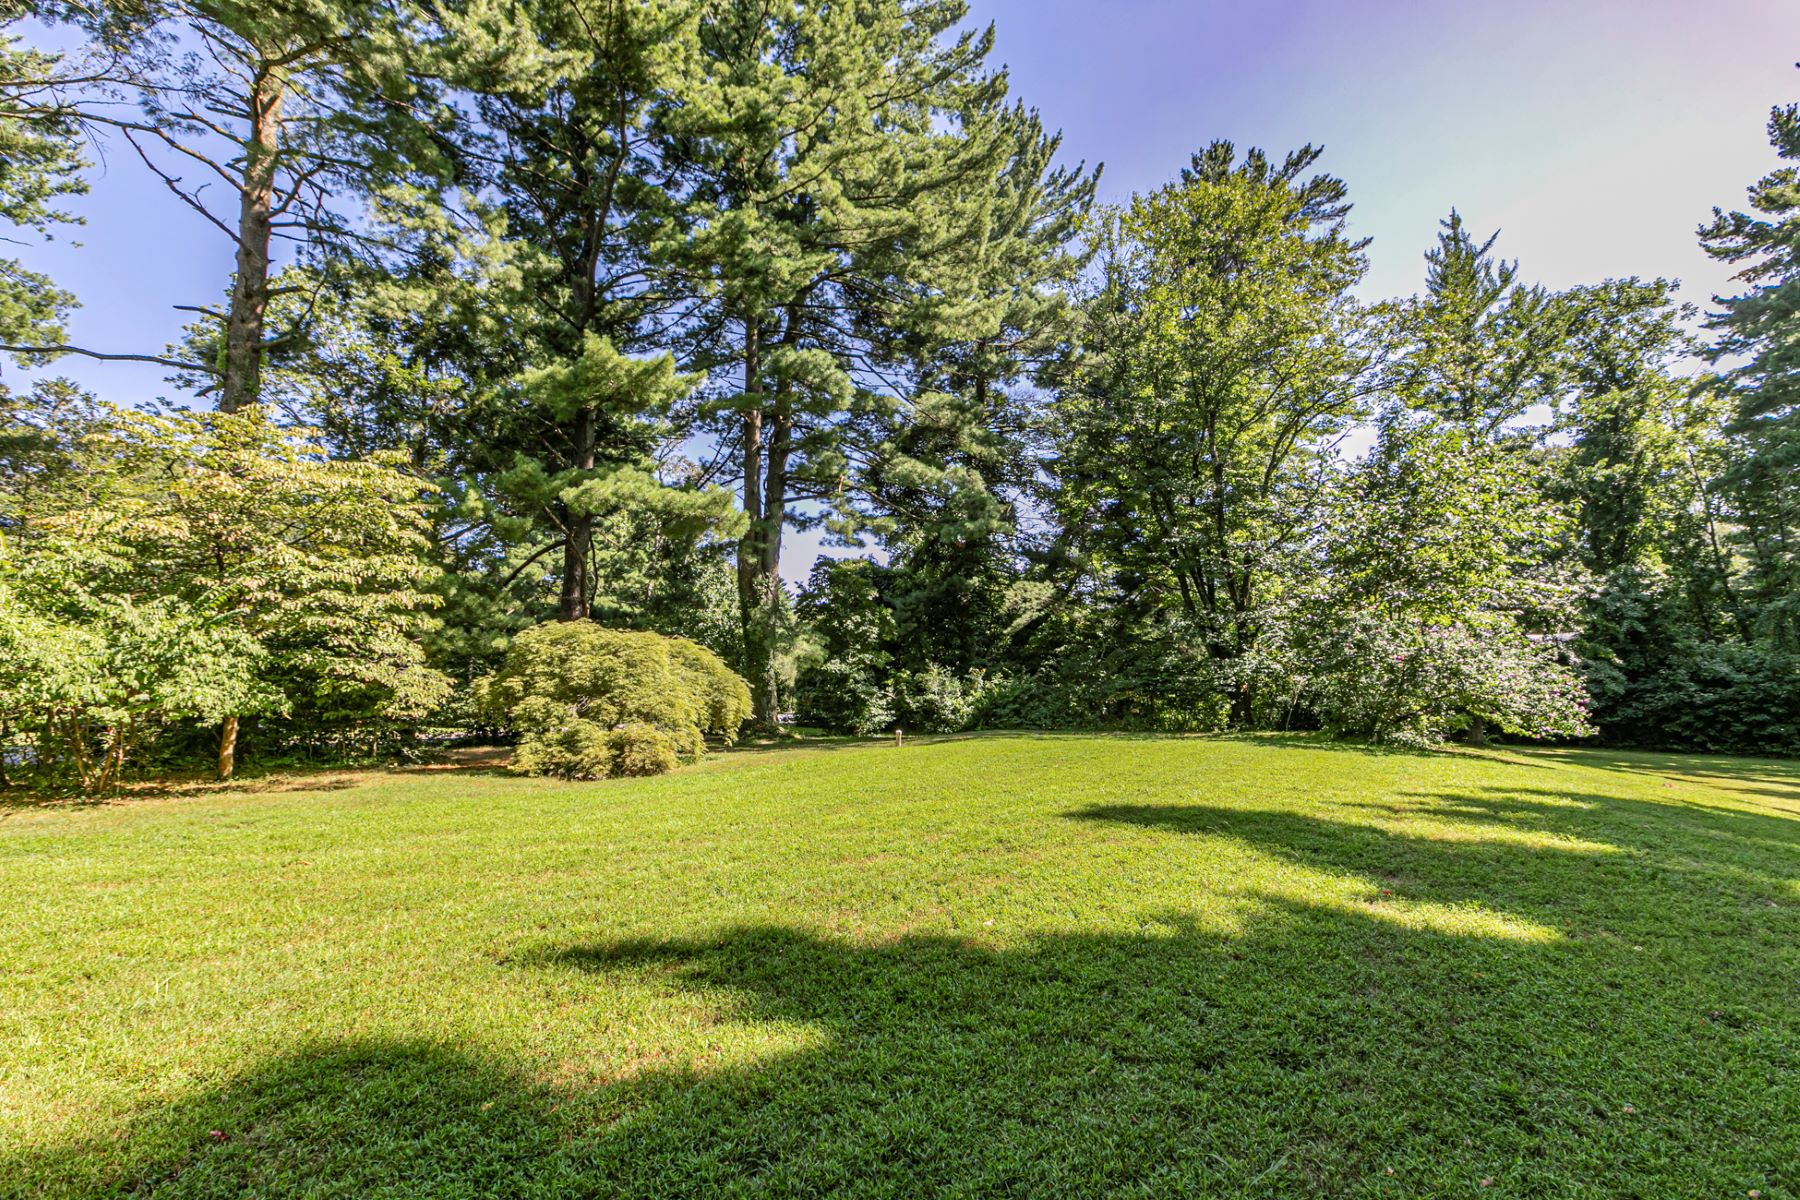 Land for Sale at A Choice Location for the Home of Your Dreams 102 Battle Road Circle, Princeton, New Jersey 08540 United States